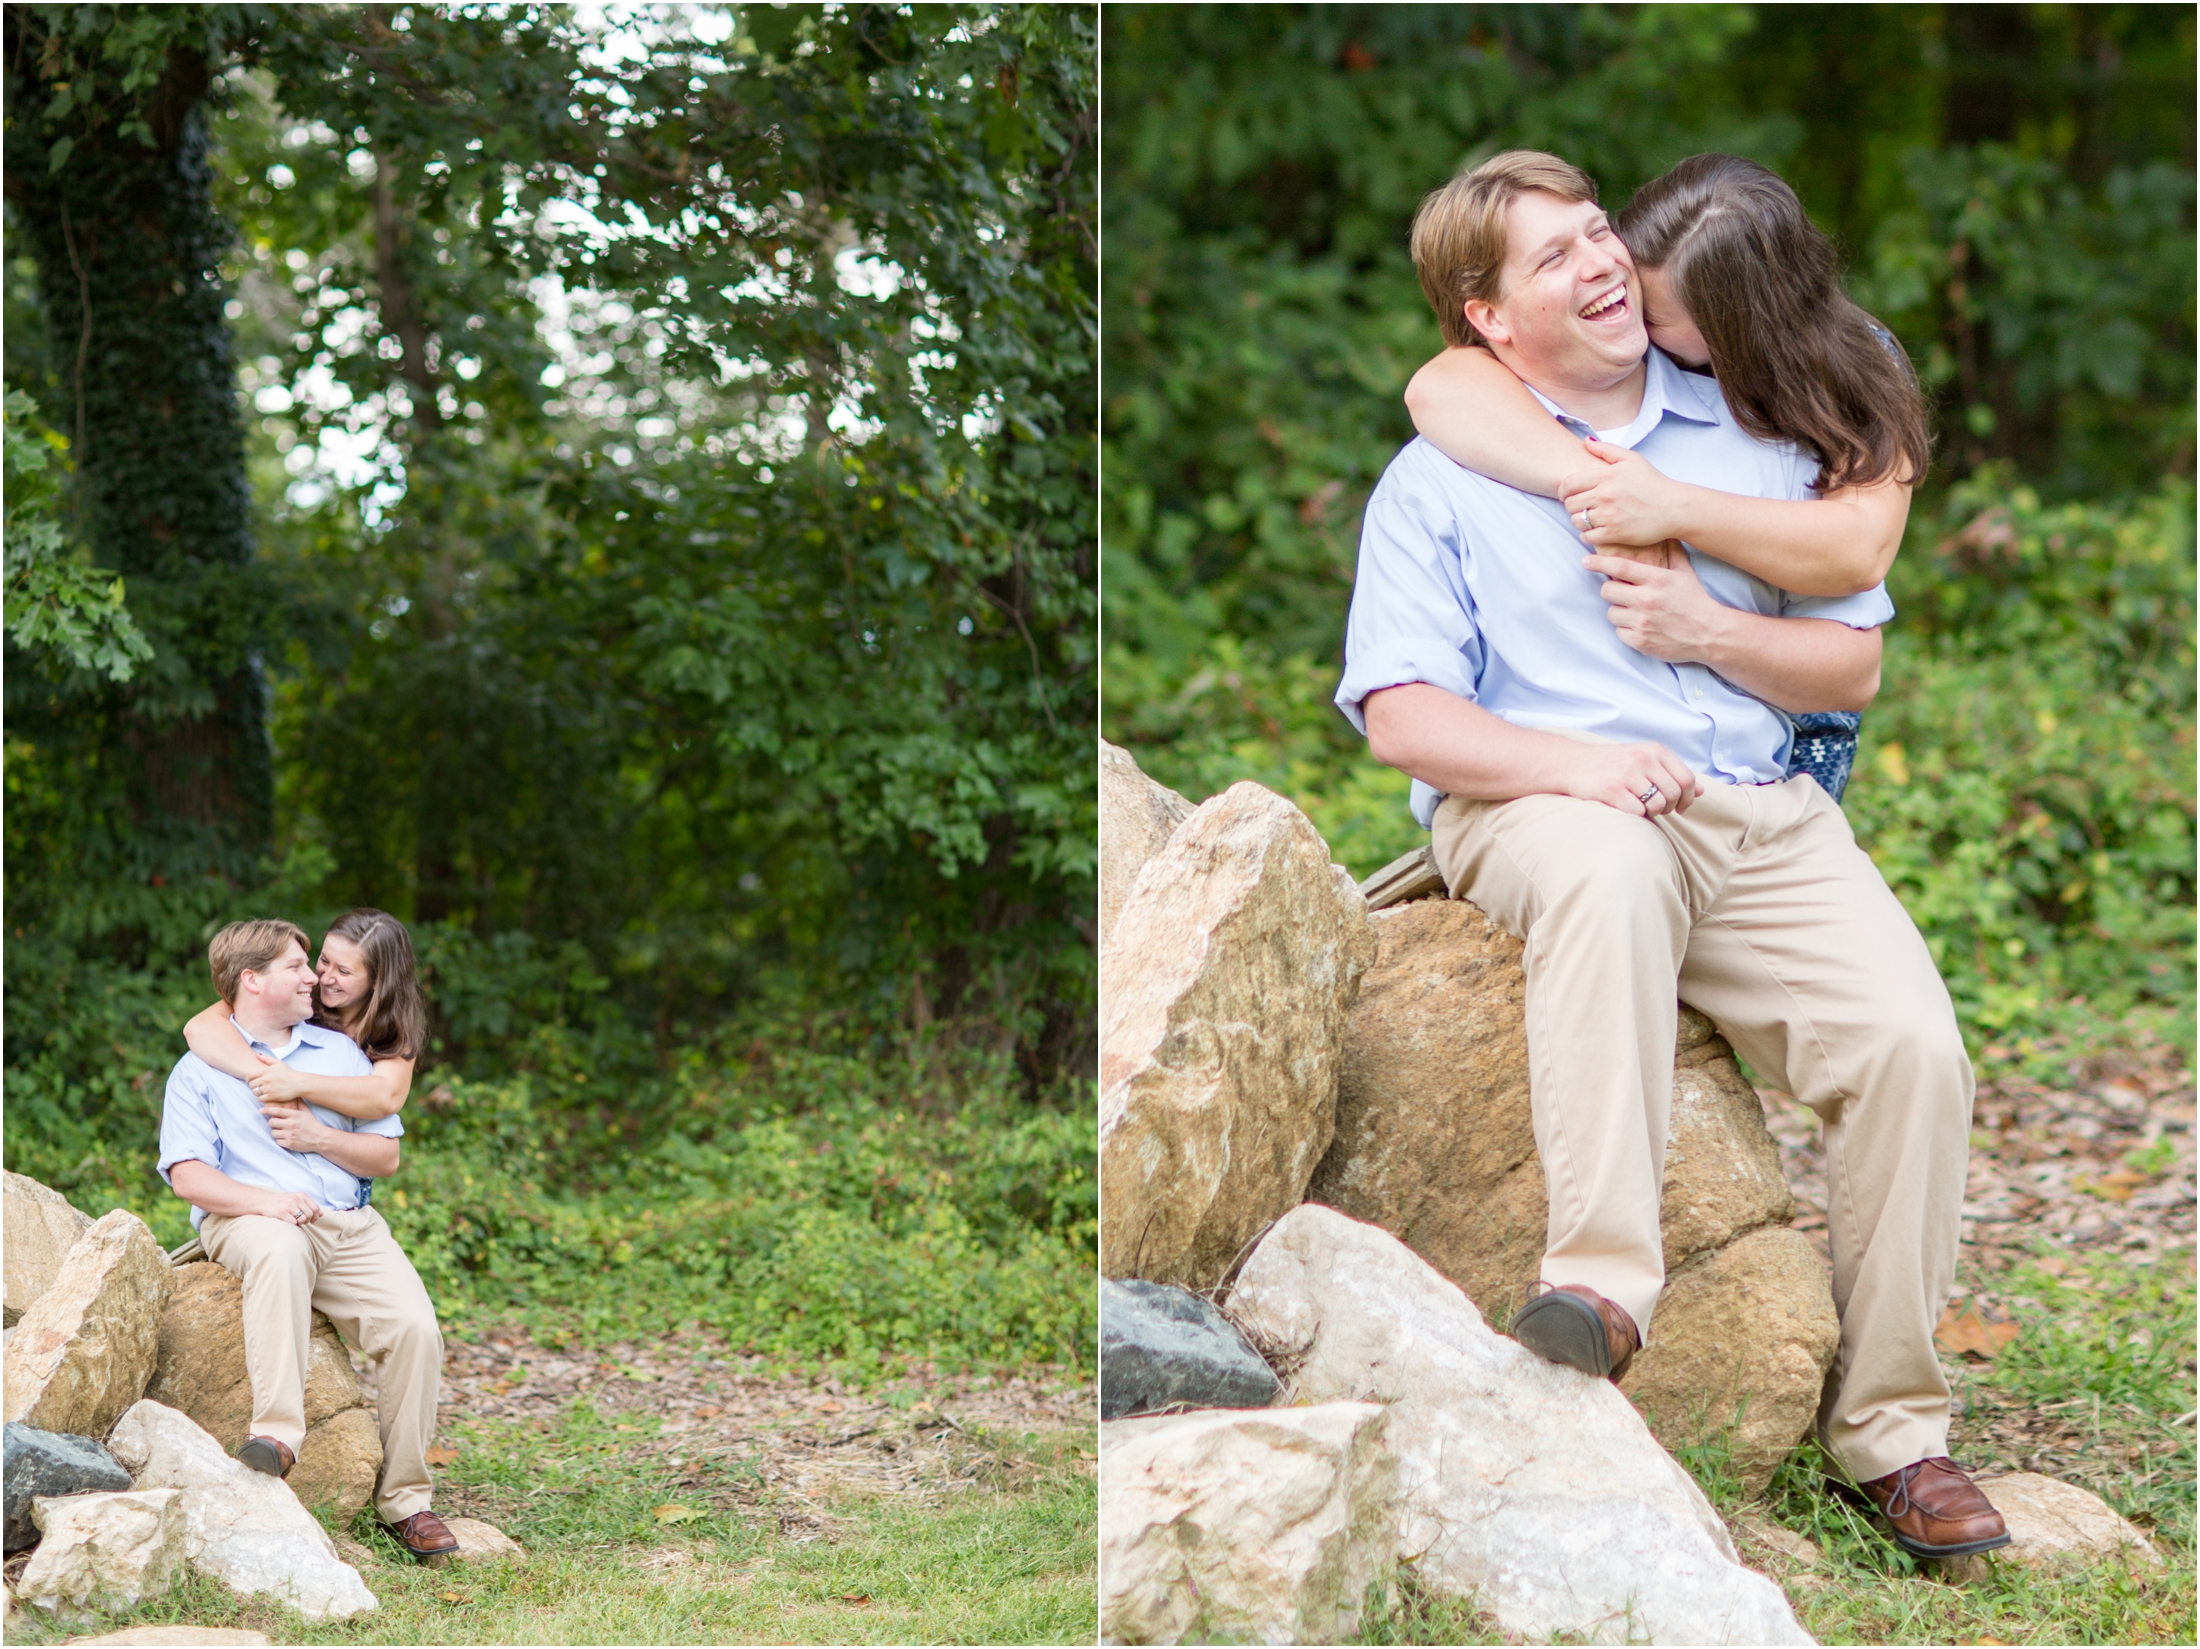 Jean-Alex-Engagement-106.jpg